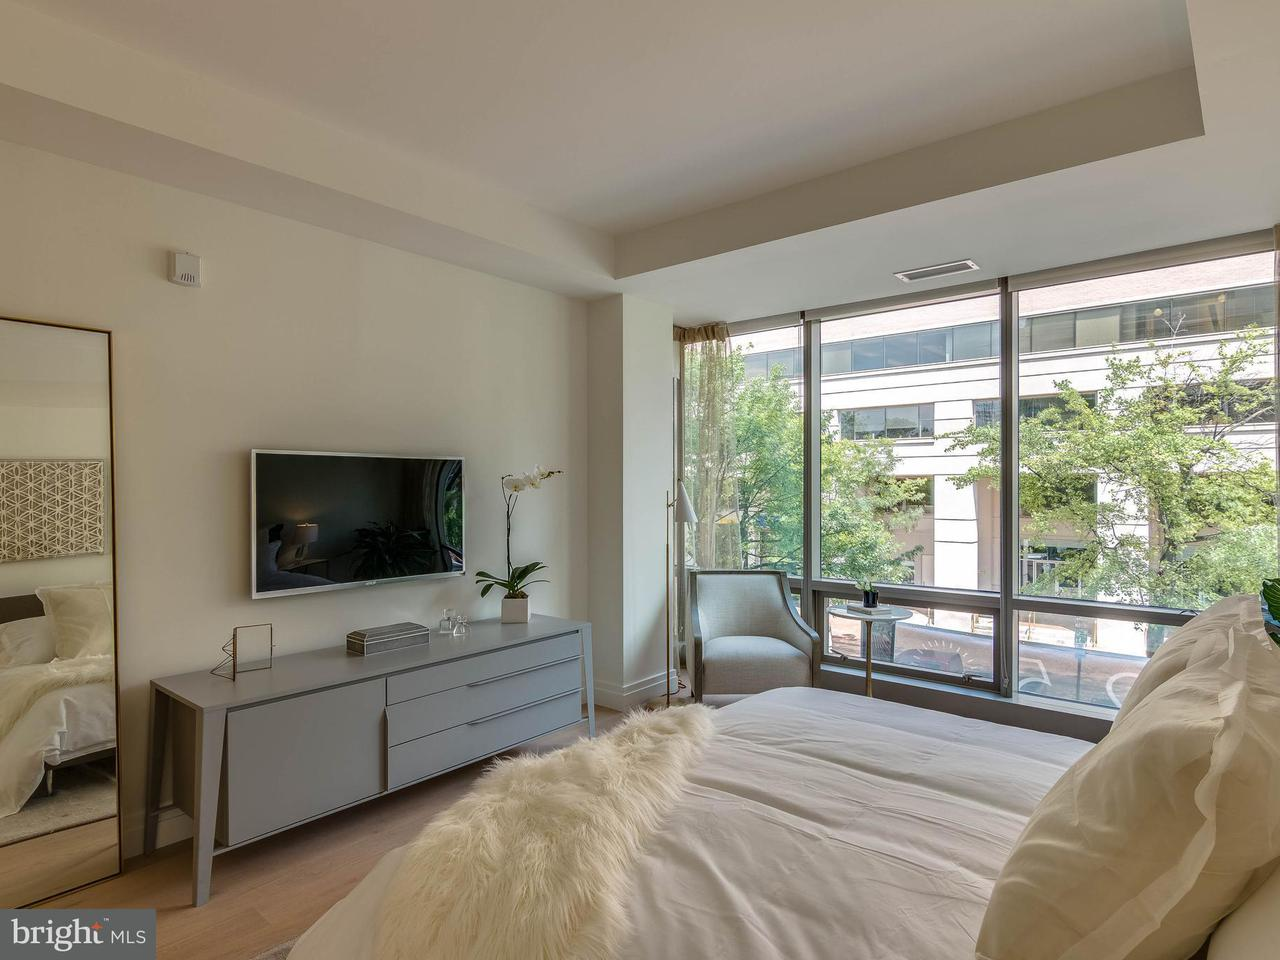 Additional photo for property listing at 2501 M St Nw #203 2501 M St Nw #203 Washington, 컬럼비아주 20037 미국